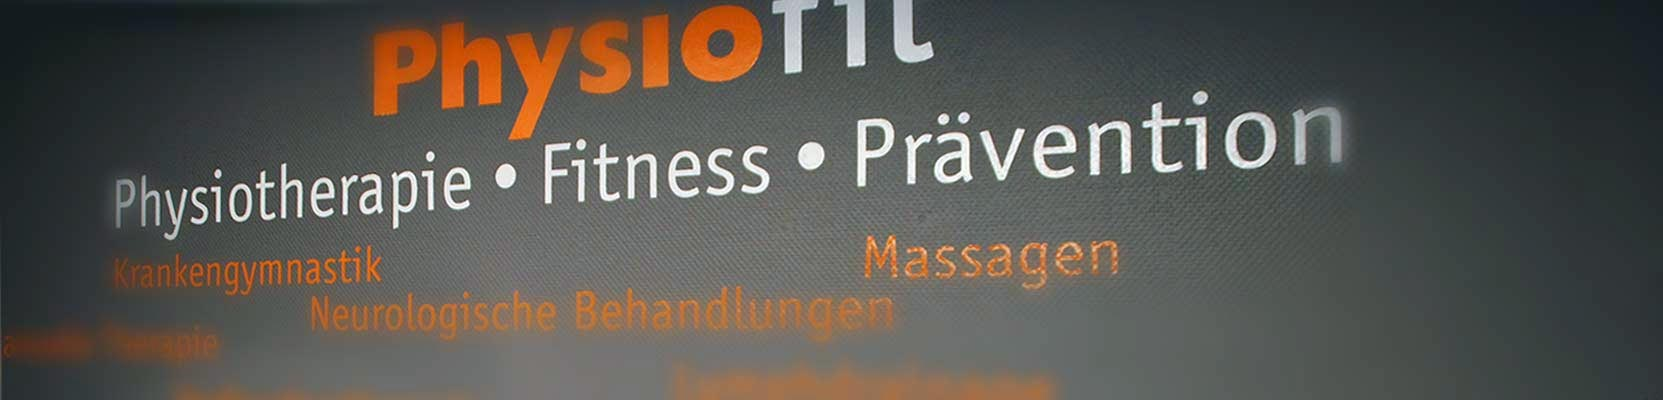 Physiofit Isernhagen